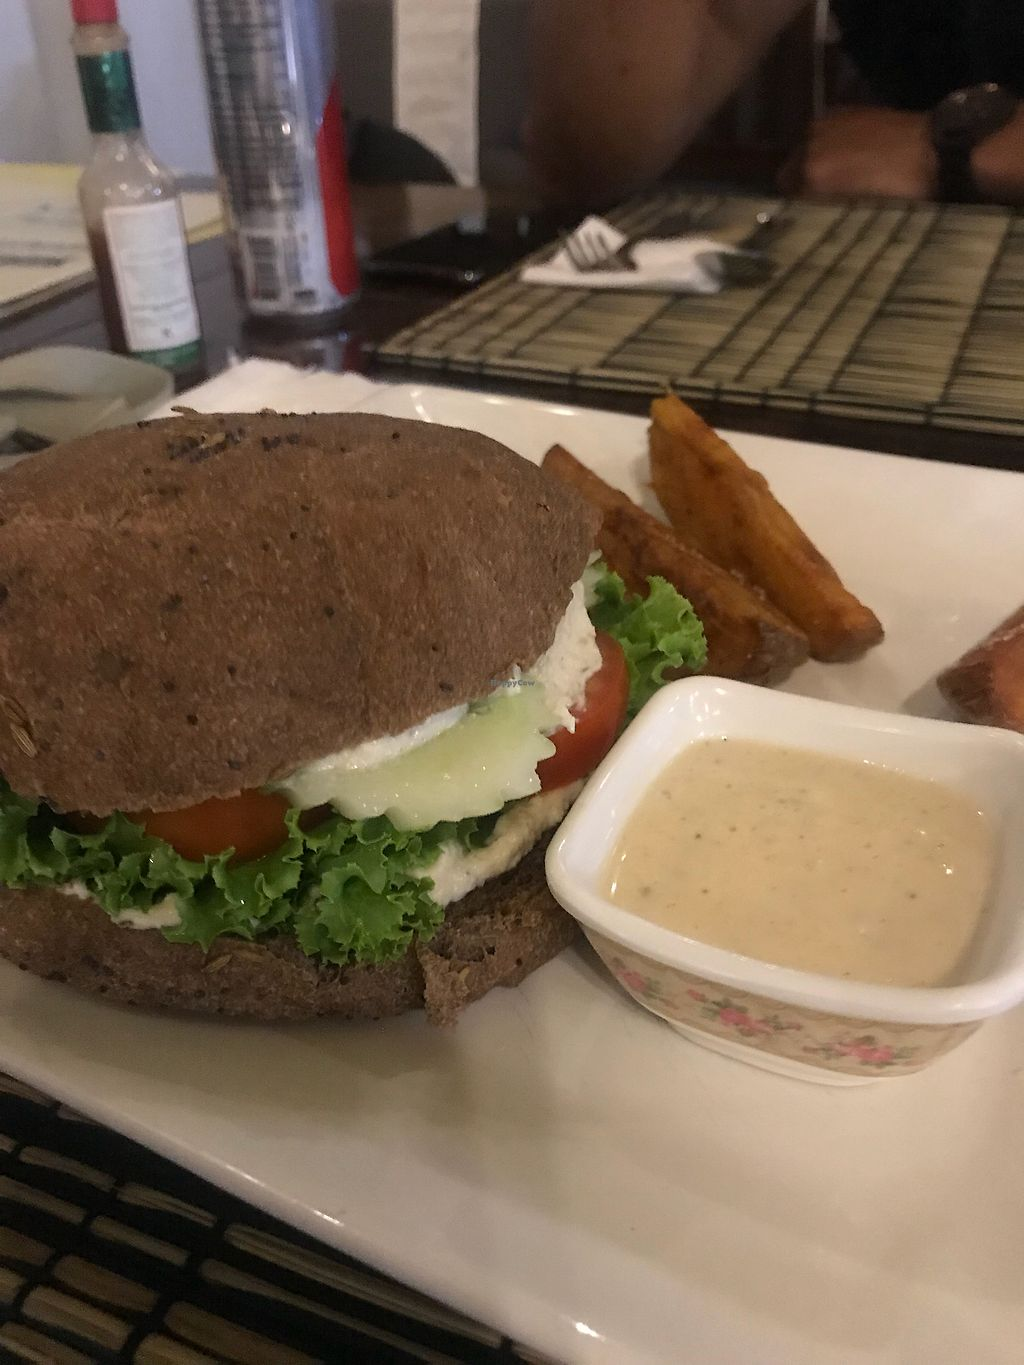 """Photo of Pailay  by <a href=""""/members/profile/mbrewer1127"""">mbrewer1127</a> <br/>Rye bread sandwich with vegan cream cheese  <br/> February 23, 2018  - <a href='/contact/abuse/image/106139/362773'>Report</a>"""